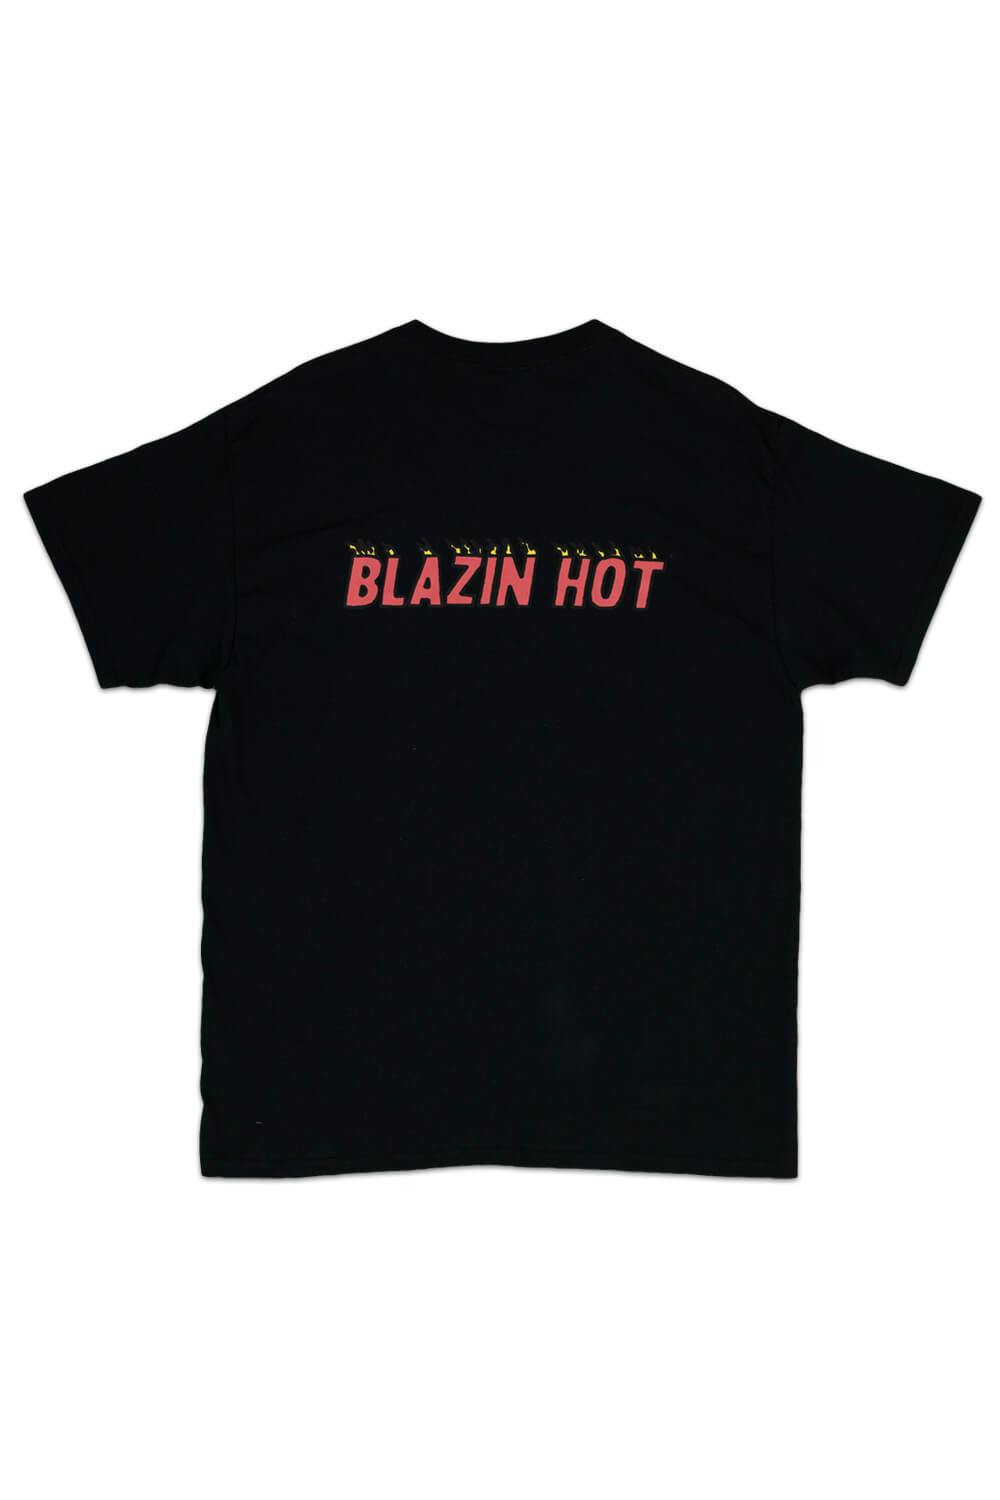 Blazin Hot T-shirt Black